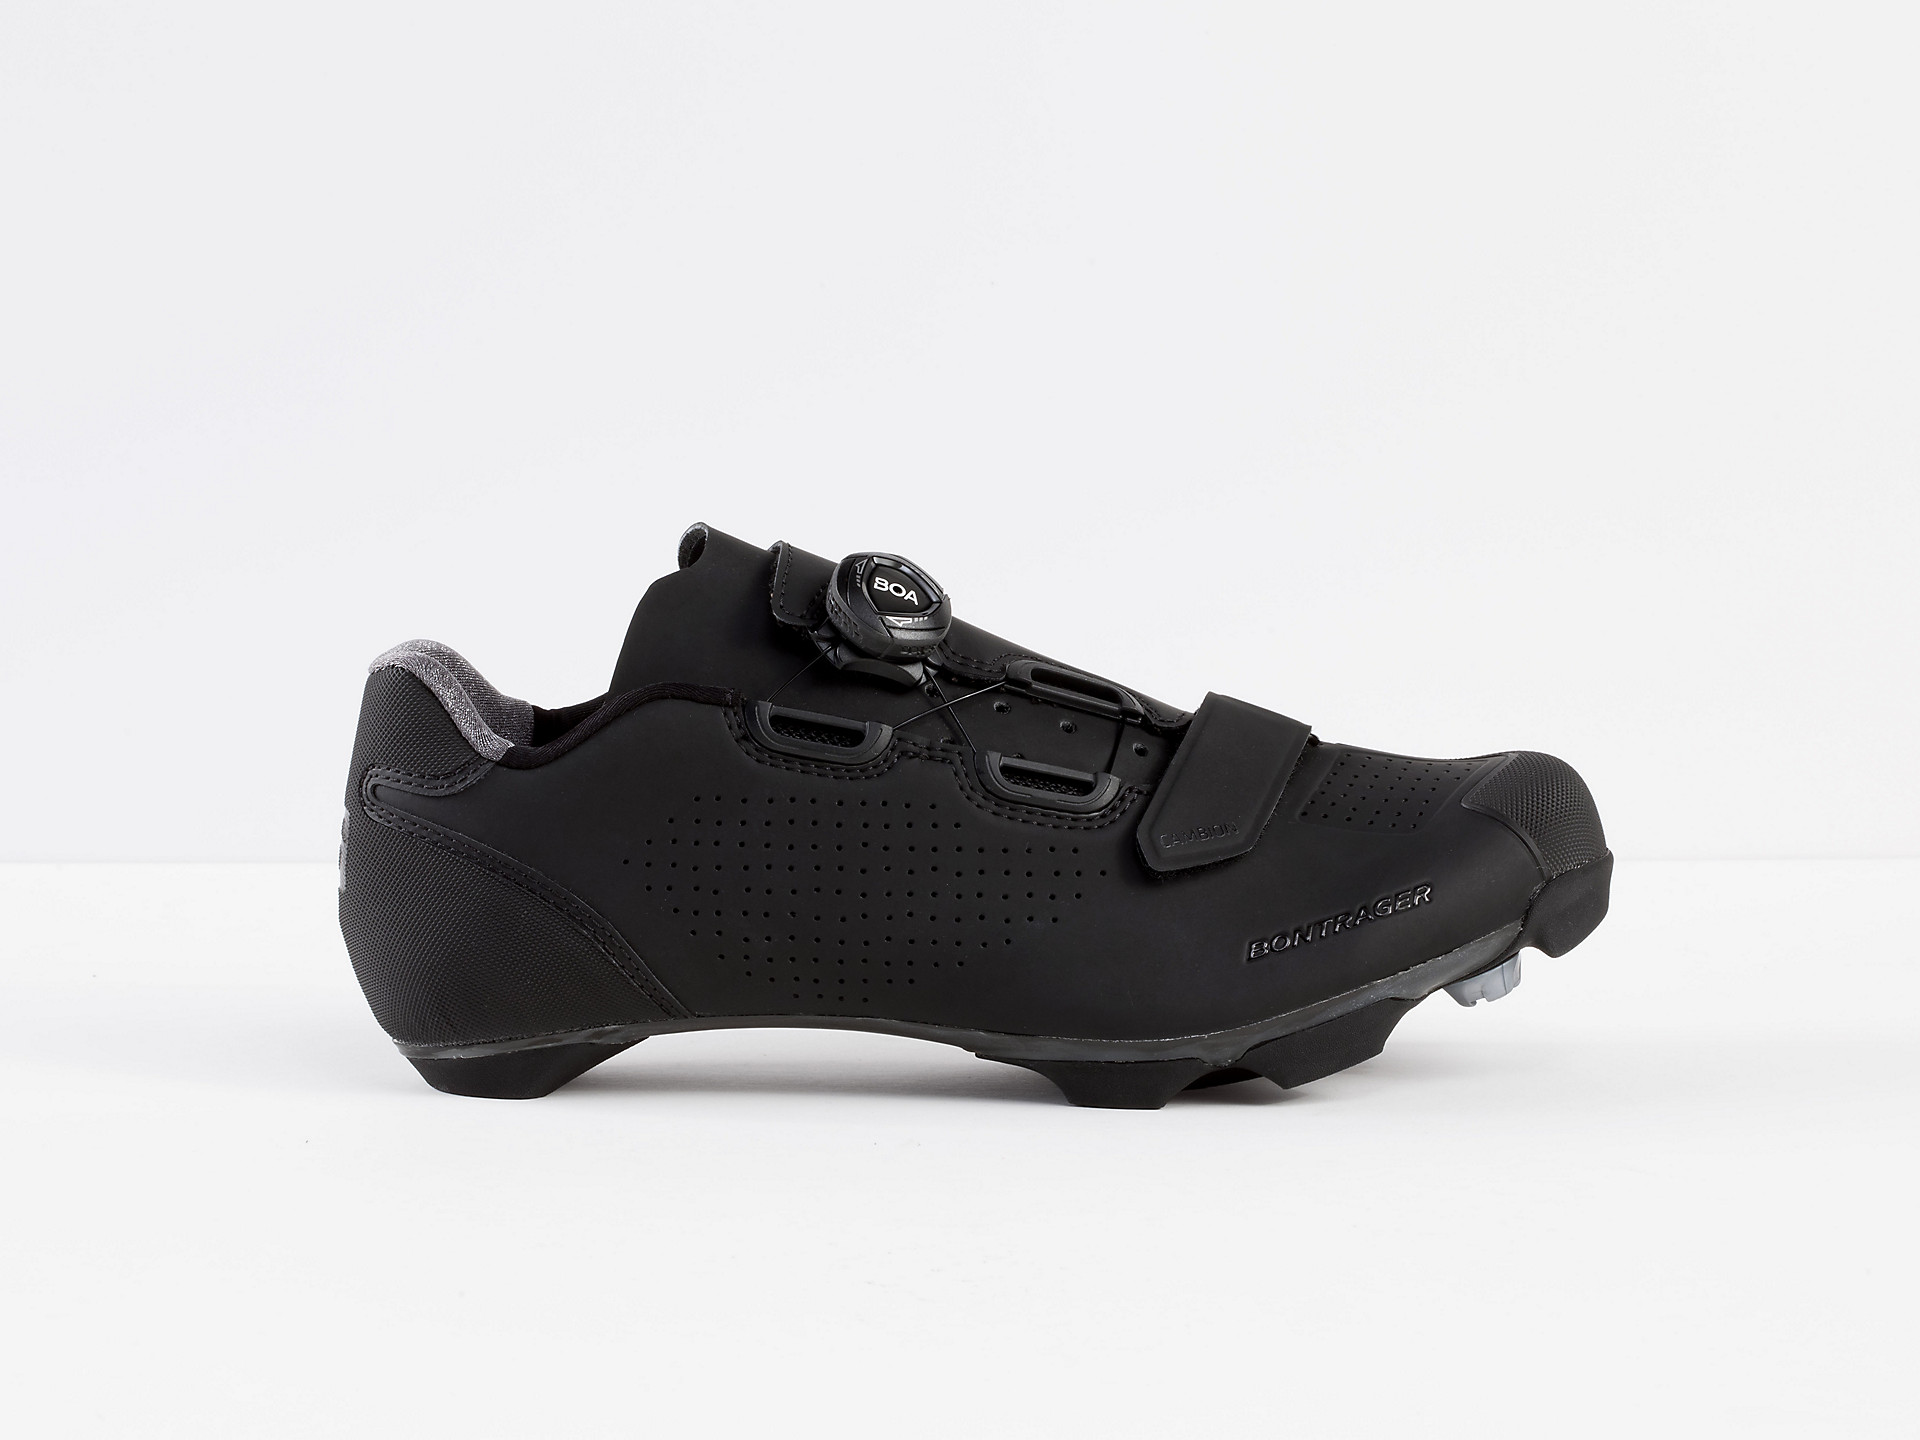 257d529ad0fe Chaussures VTT Bontrager Cambion